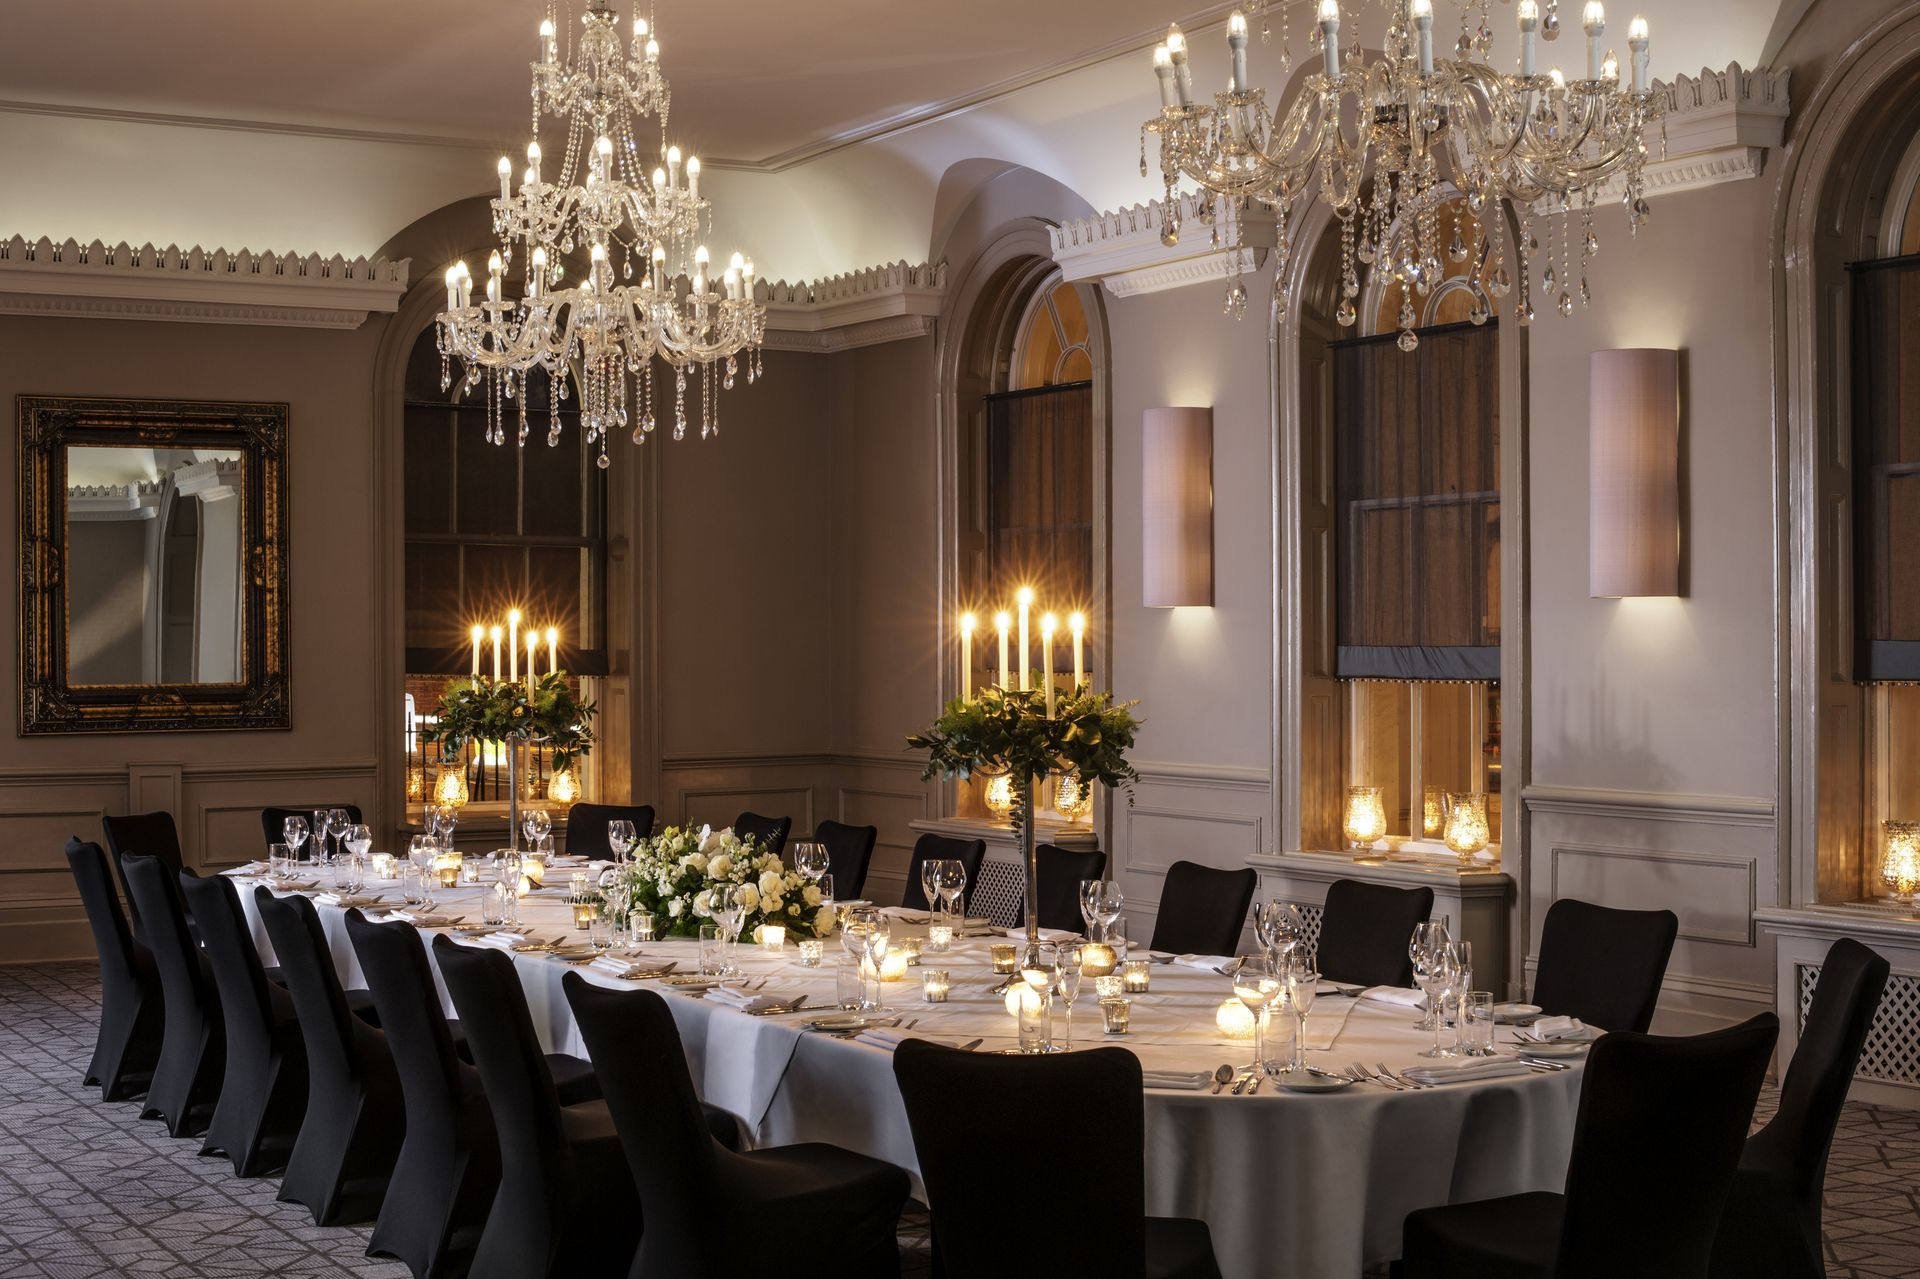 Queens Hotel Cheltenham Mgallery Guides For Brides The Wedding Directory Queens Hotel Belmont Hotel Hotel Wedding Venues